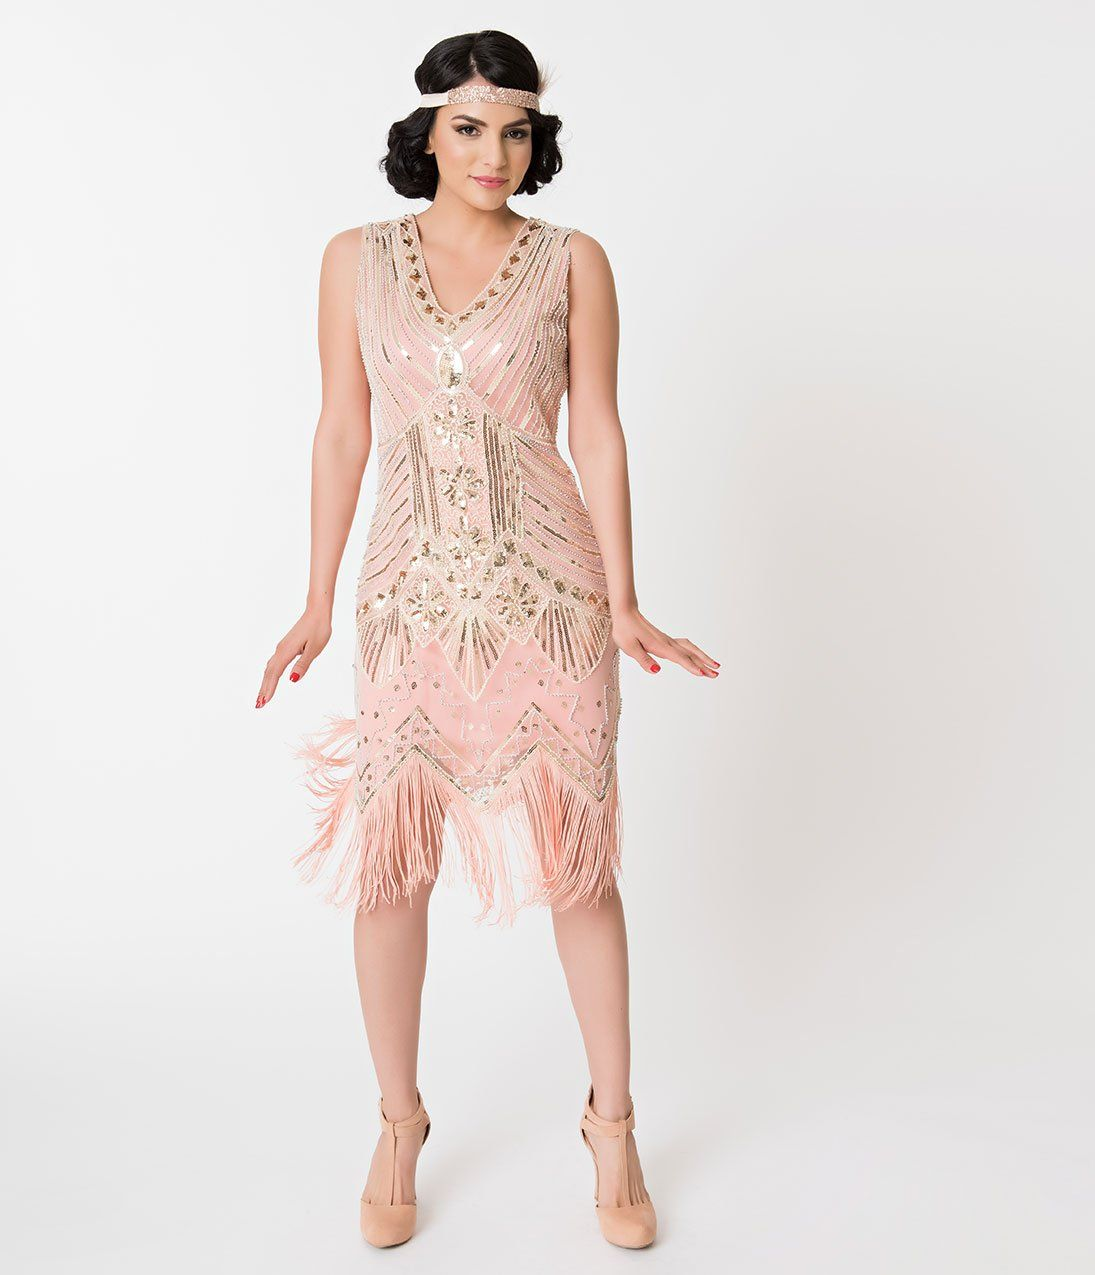 Great Gatsby Dress – Great Gatsby Dresses for Sale 6S Deco